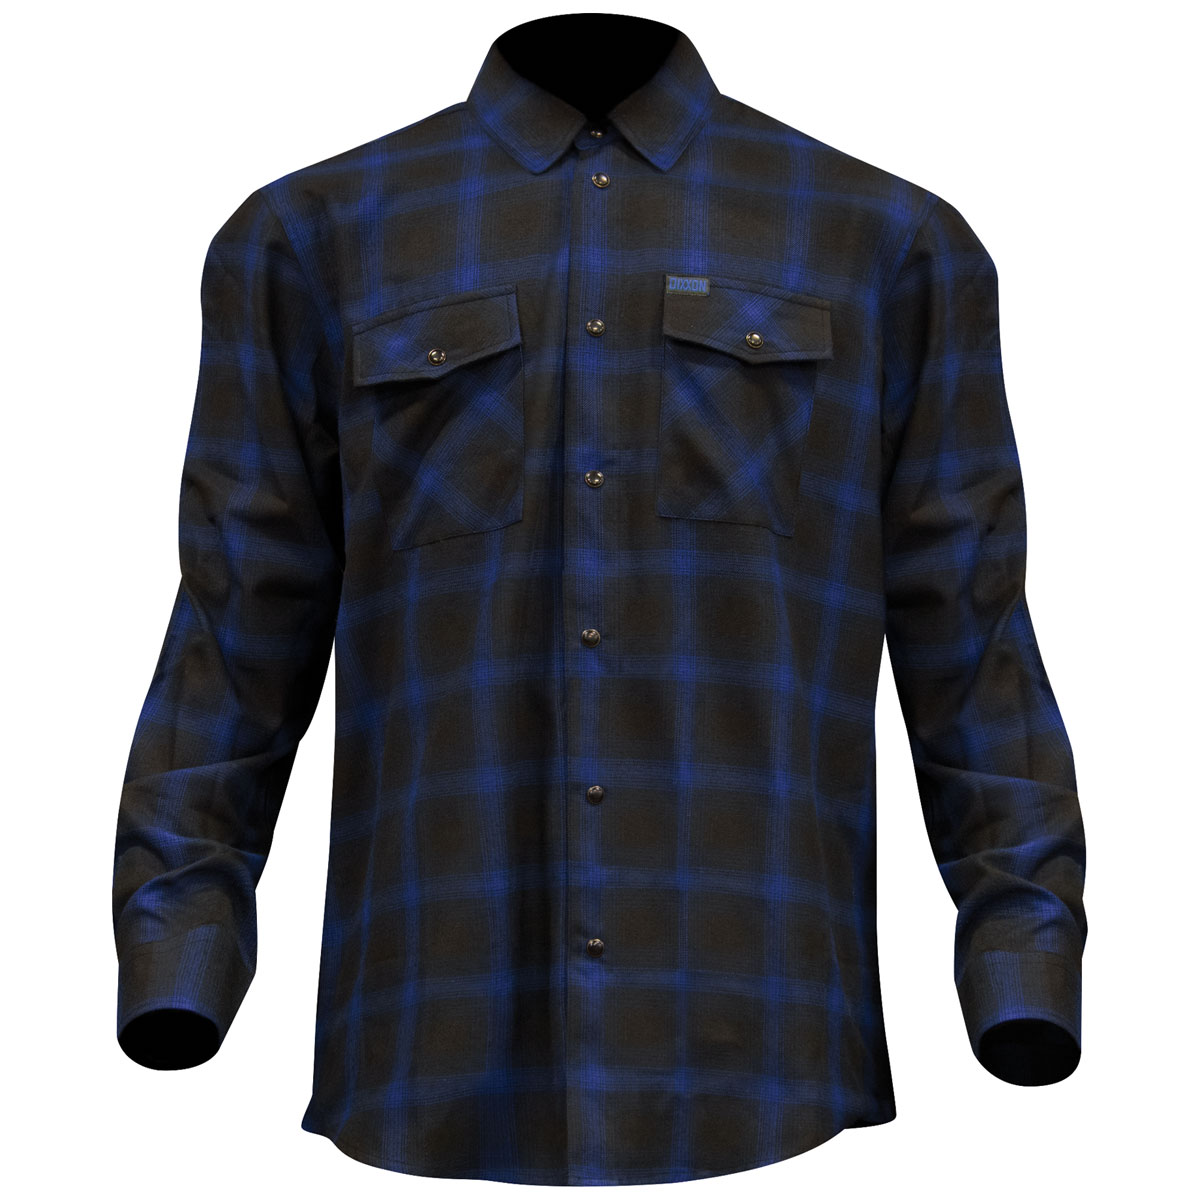 Dixxon J&P Cycles Men's The Shiner Flannel